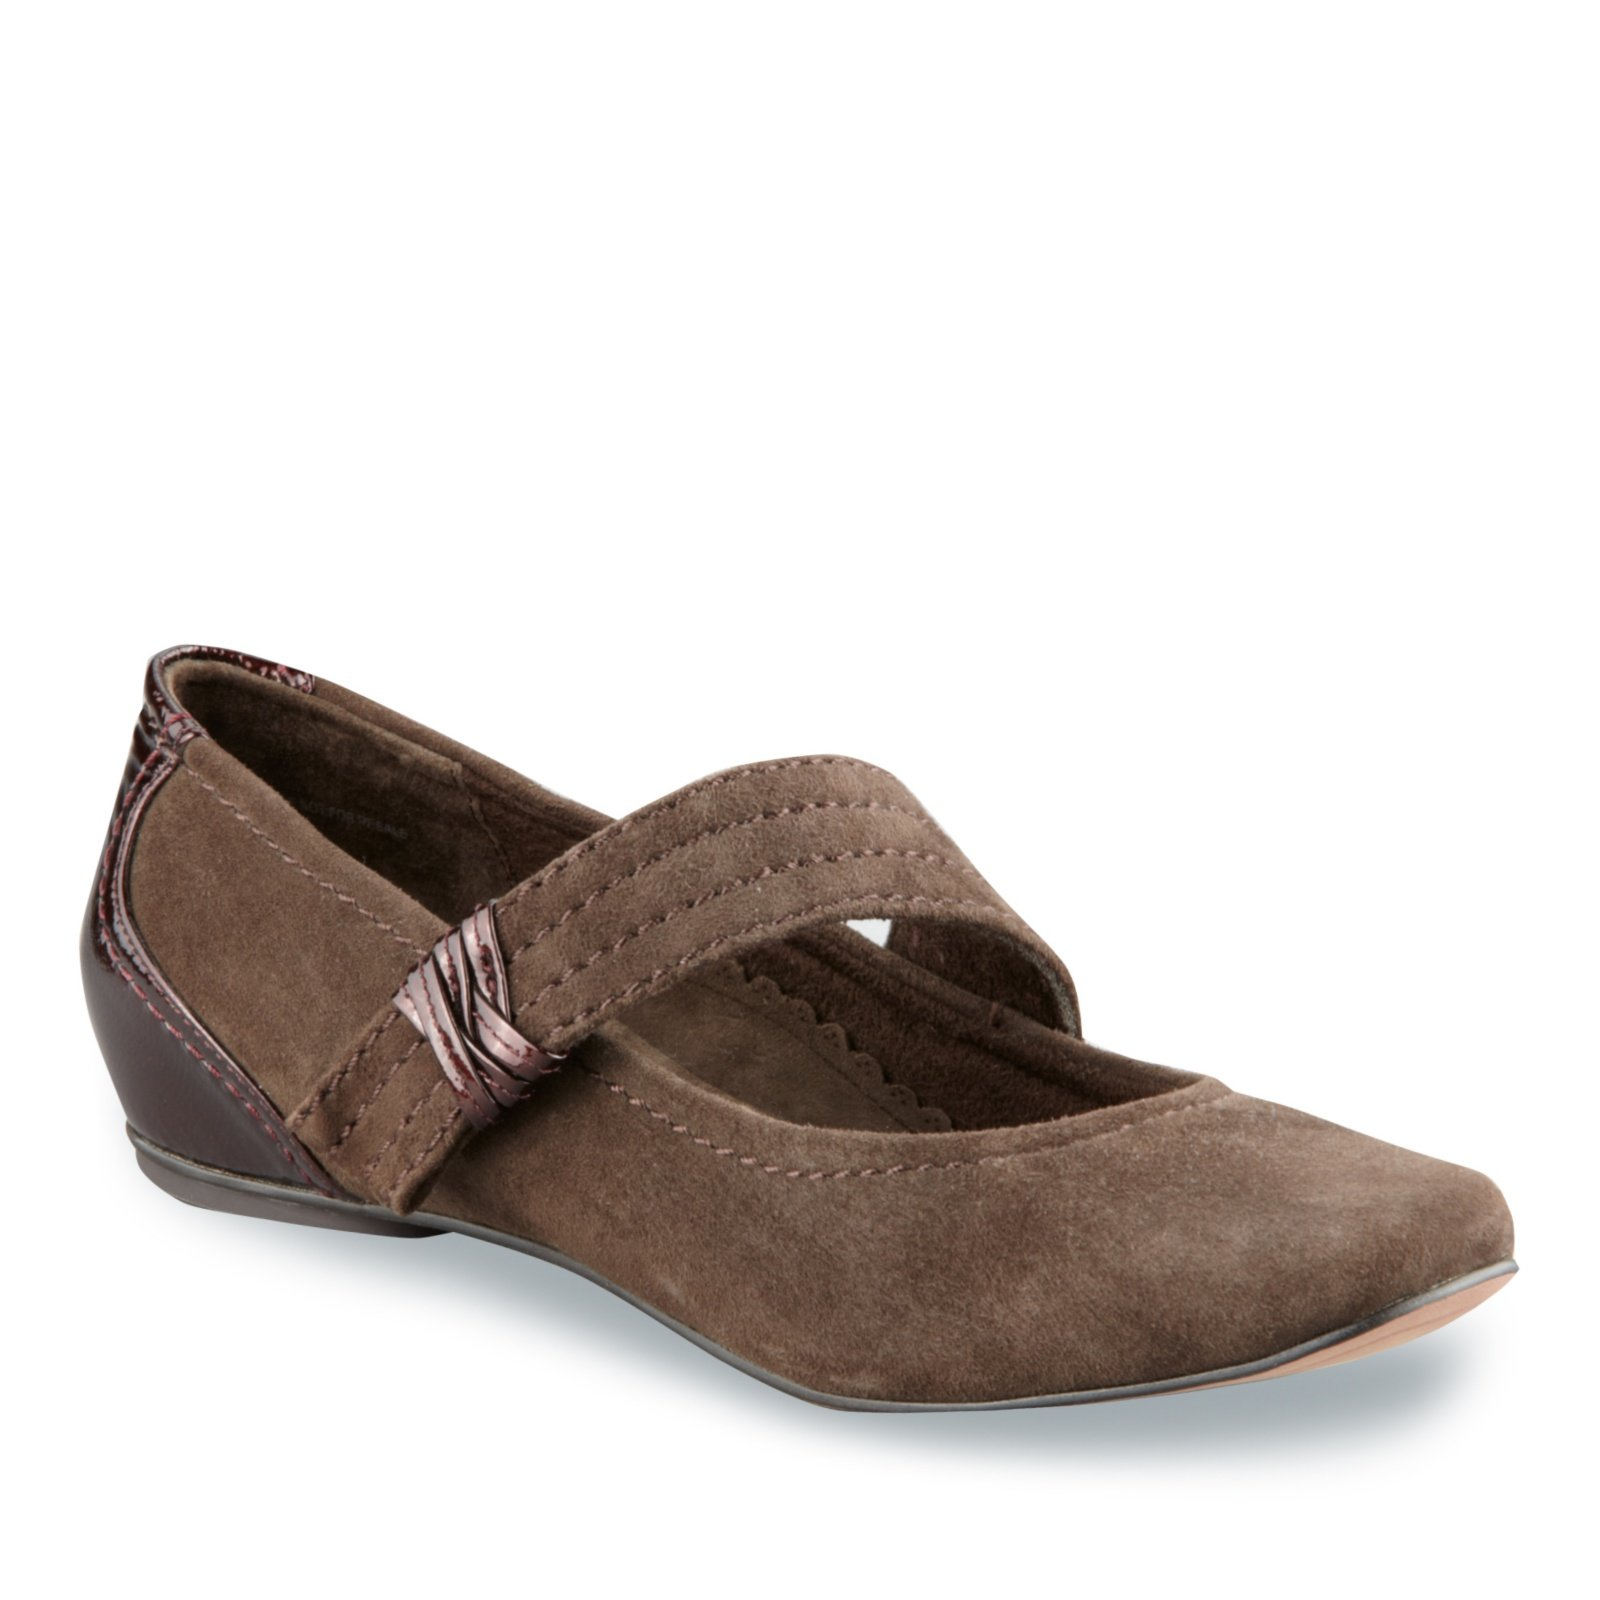 Antia Women's Bella Mary Jane Shoes, Mocha Suede, 5.5 M/C by Antia (Image #1)